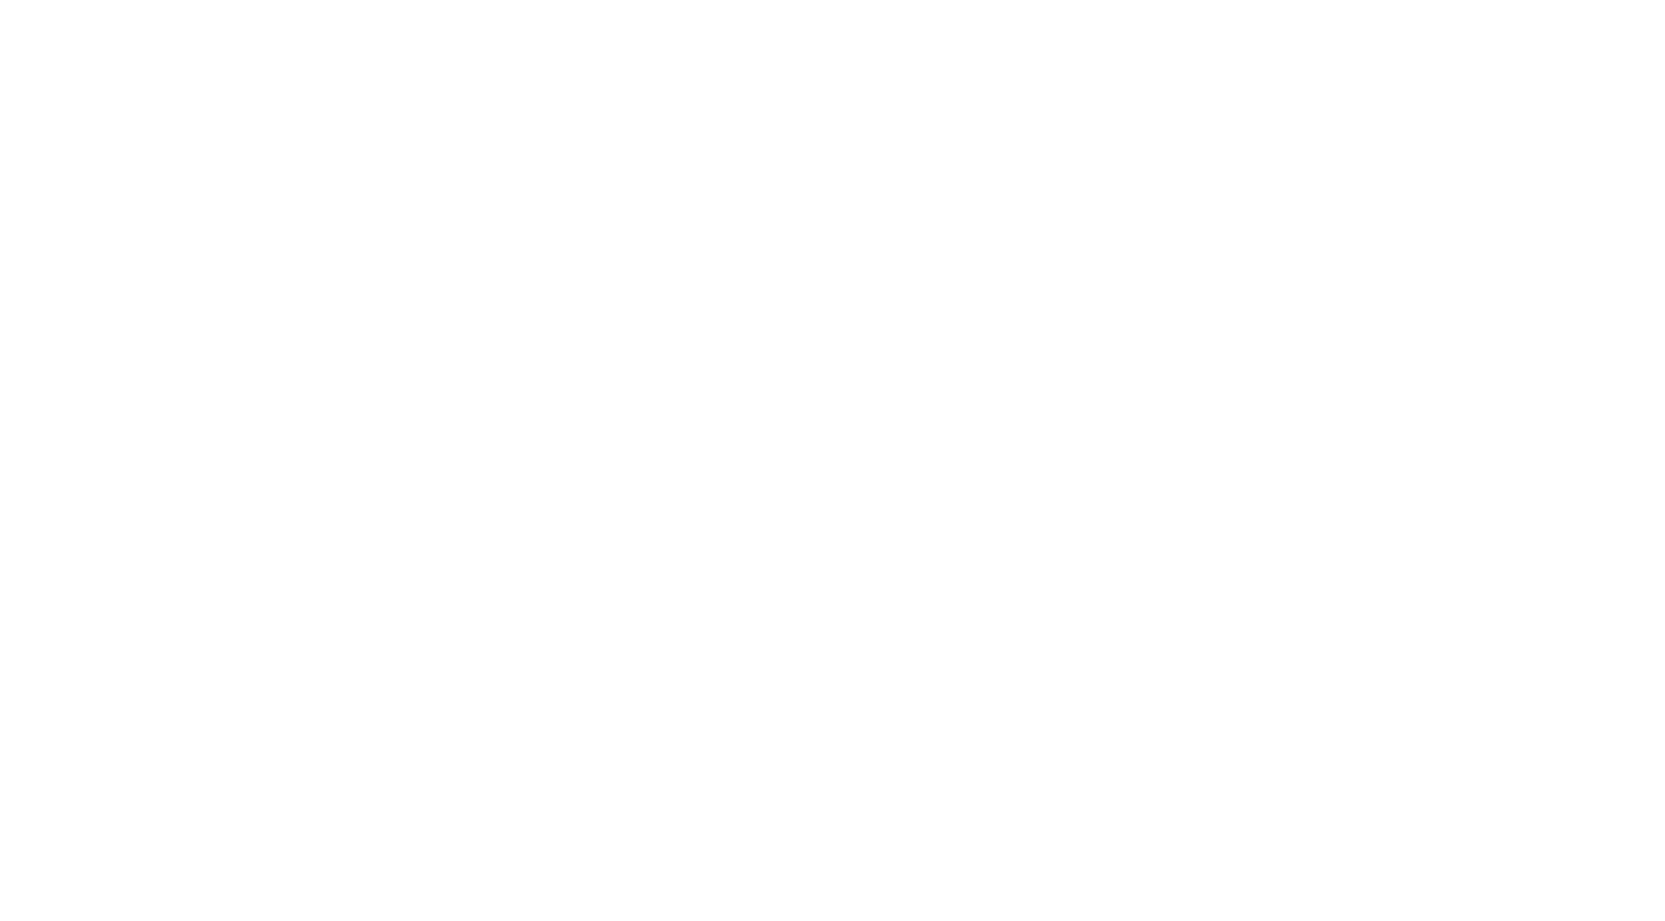 Types of Biometrics - Biometrics Institute